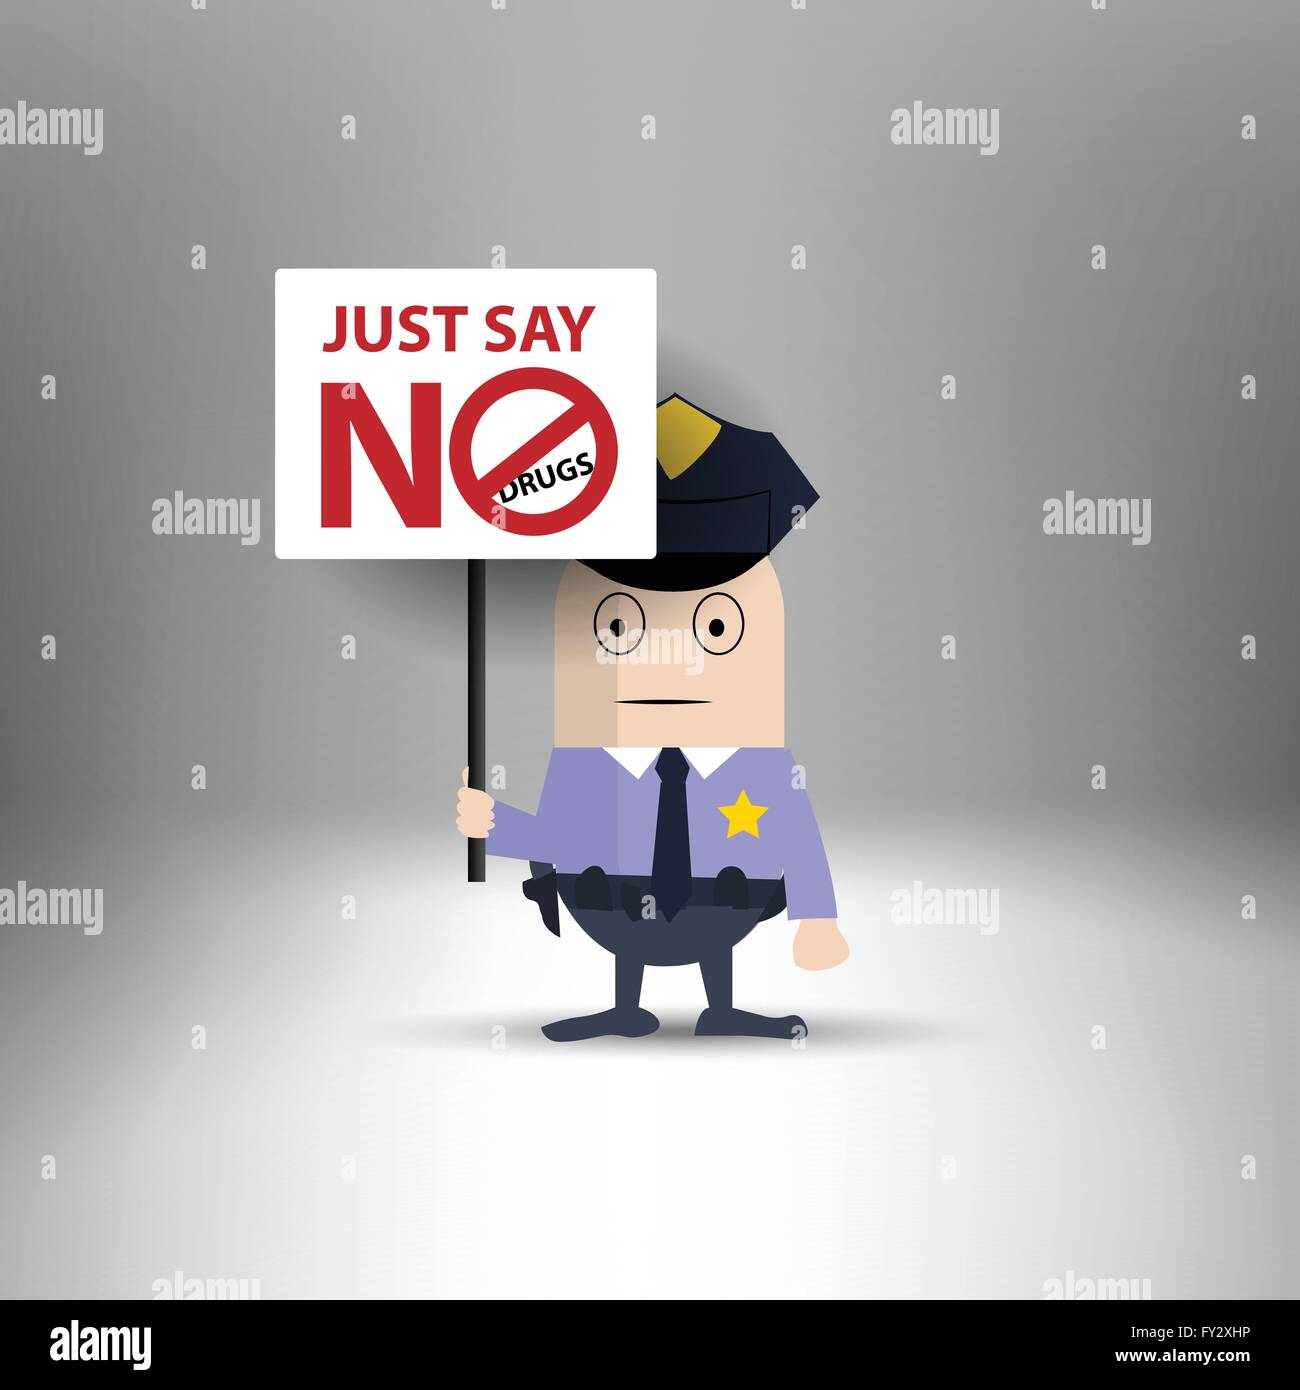 Police holding message: Just say no drugs - Stock Image